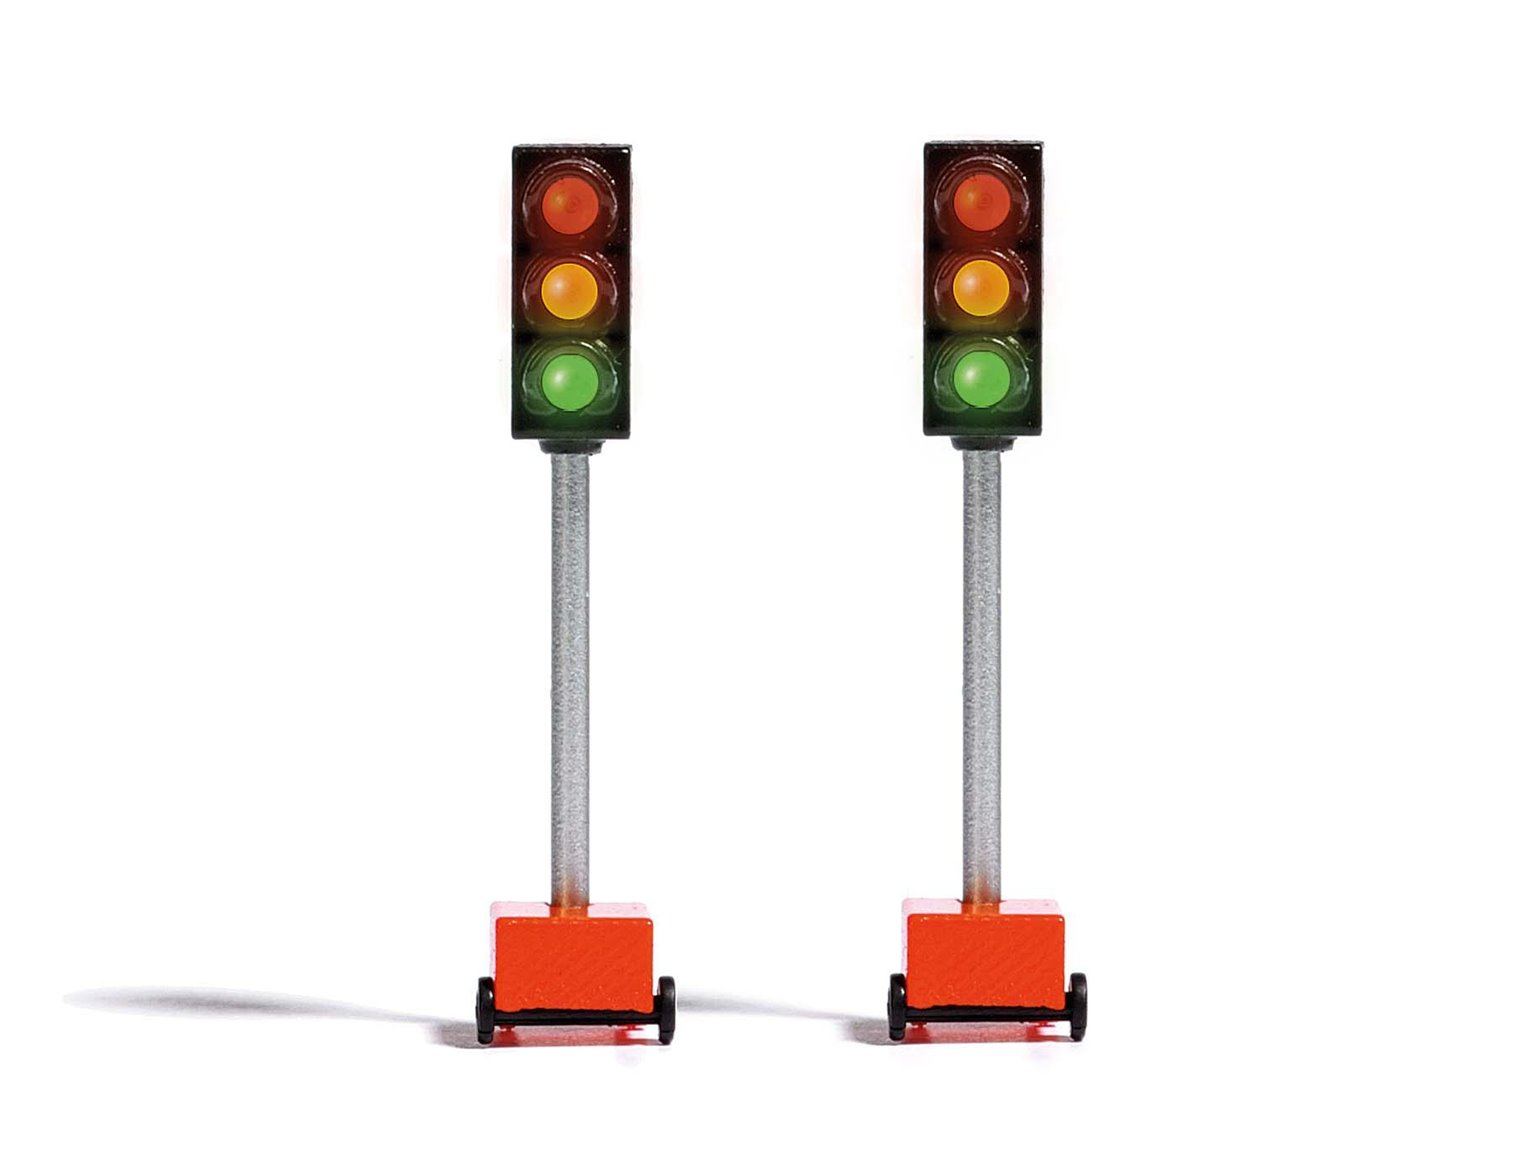 Figures - Temporary Traffic Lights (2 Pack)